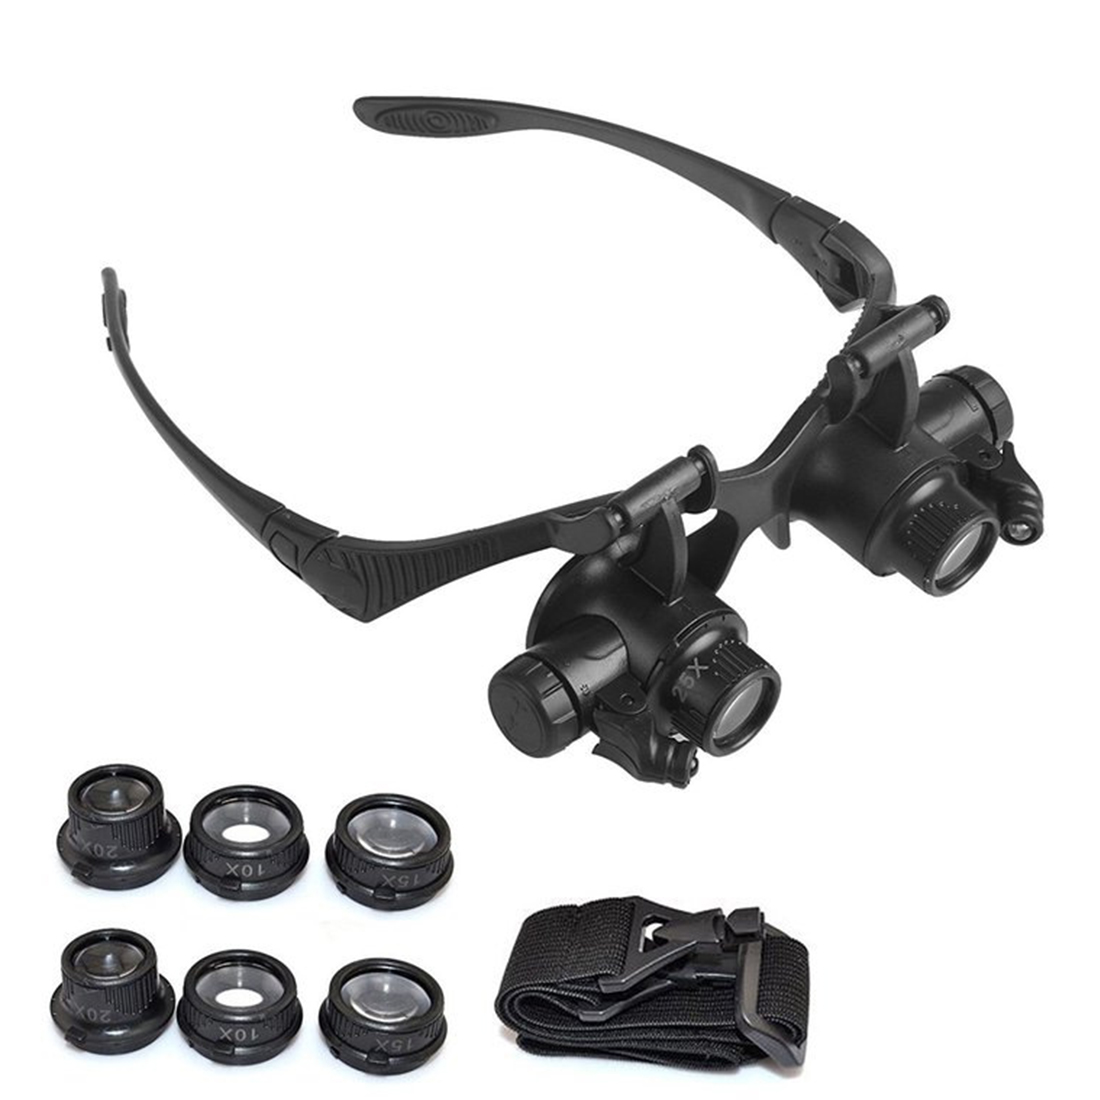 Headband Magnifying Glasses 10X 15X 20X 25X Eye Jewelry Watch Repair Magnifier Glasses With 2 LED Lights Loupe Microscope